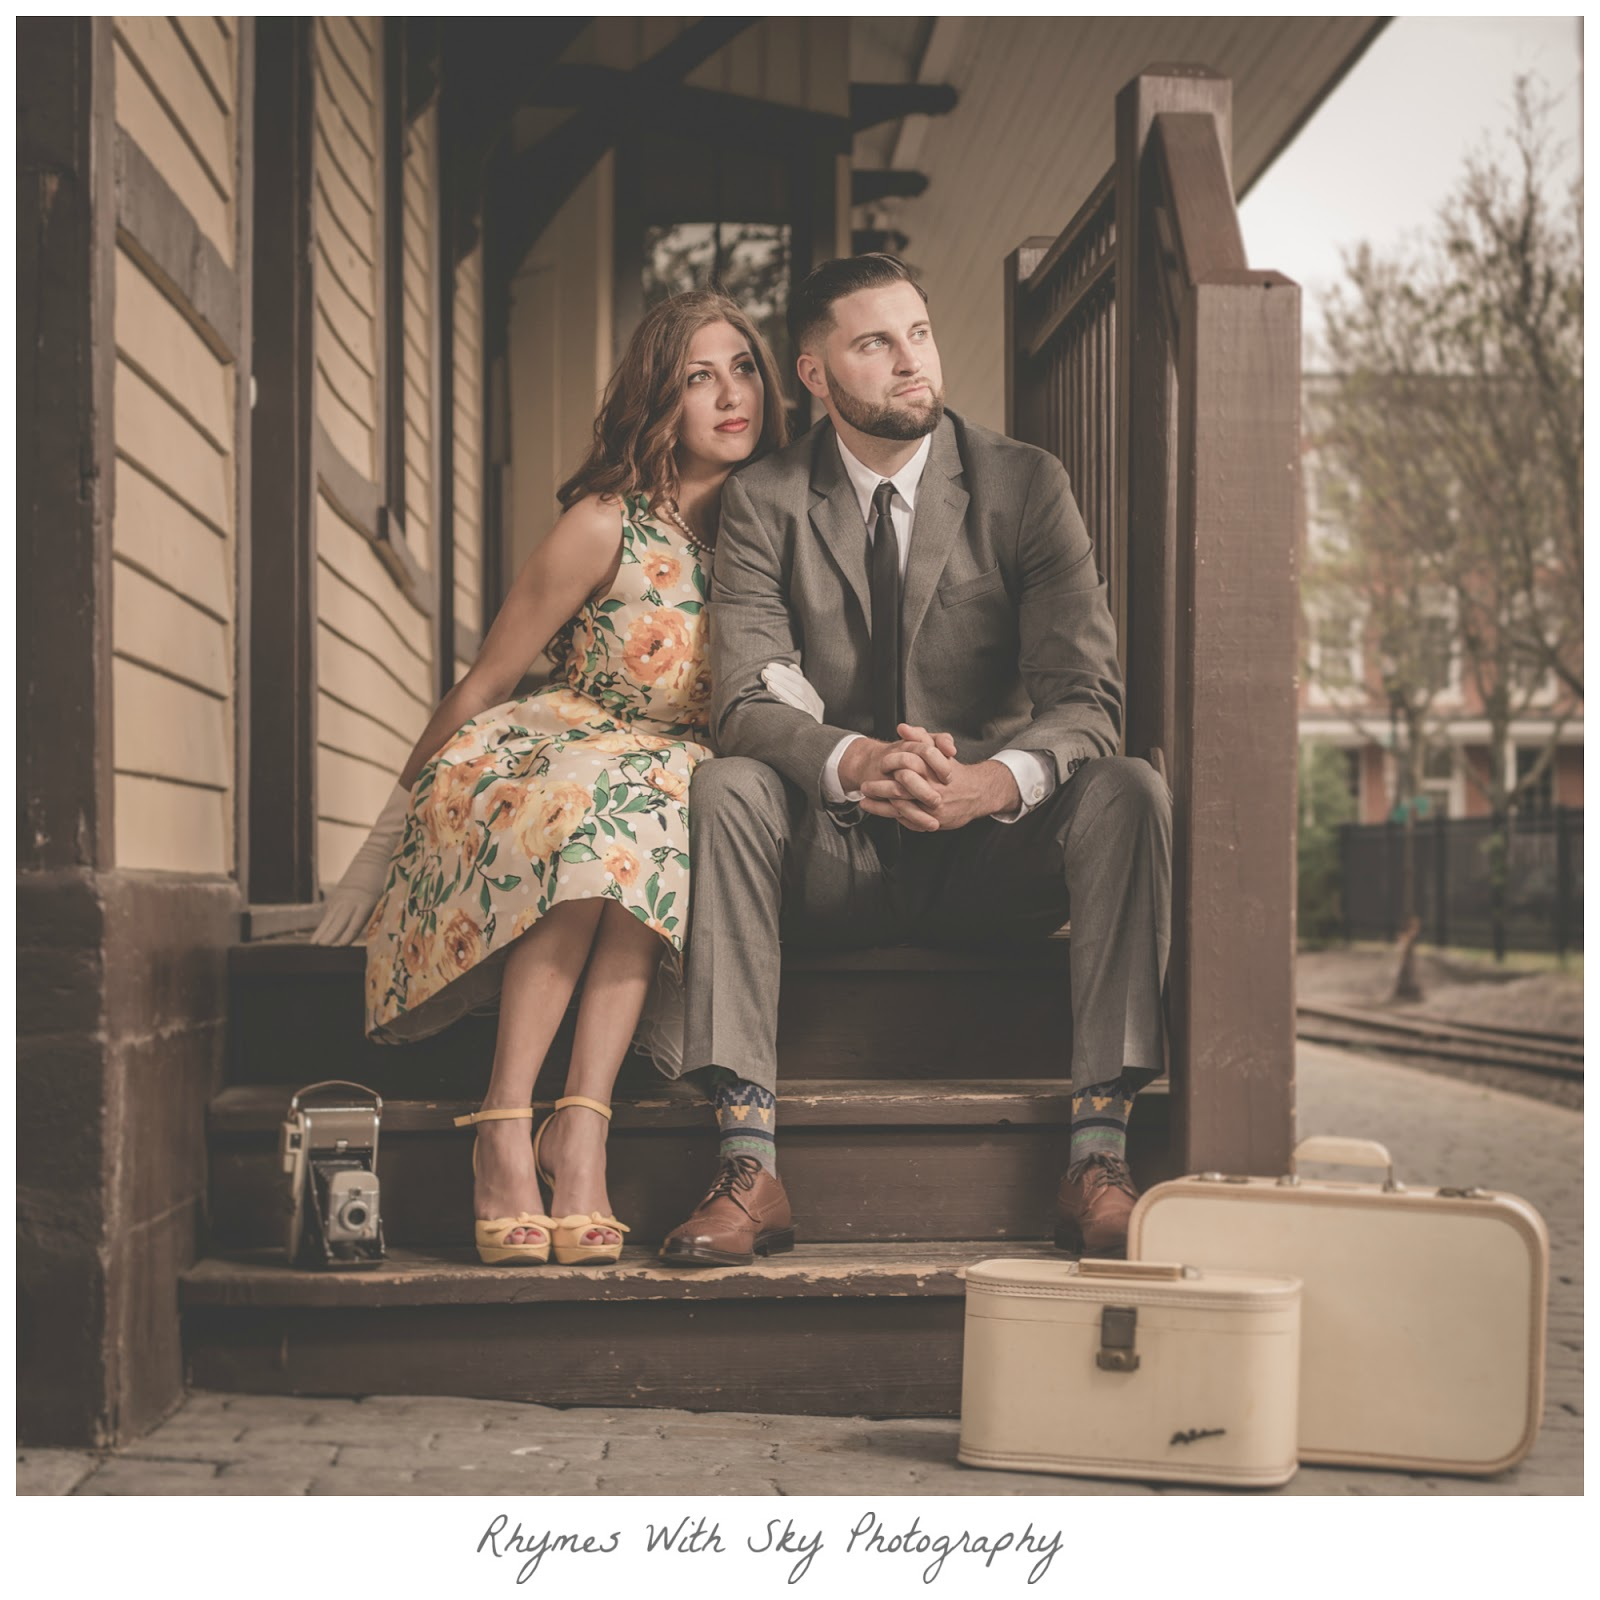 Beyond Absolutely Nailing The Wardrobe They Stunned In Front Of Camera Youll Be Seeing More These Two On Blog For Their Wedding Spring